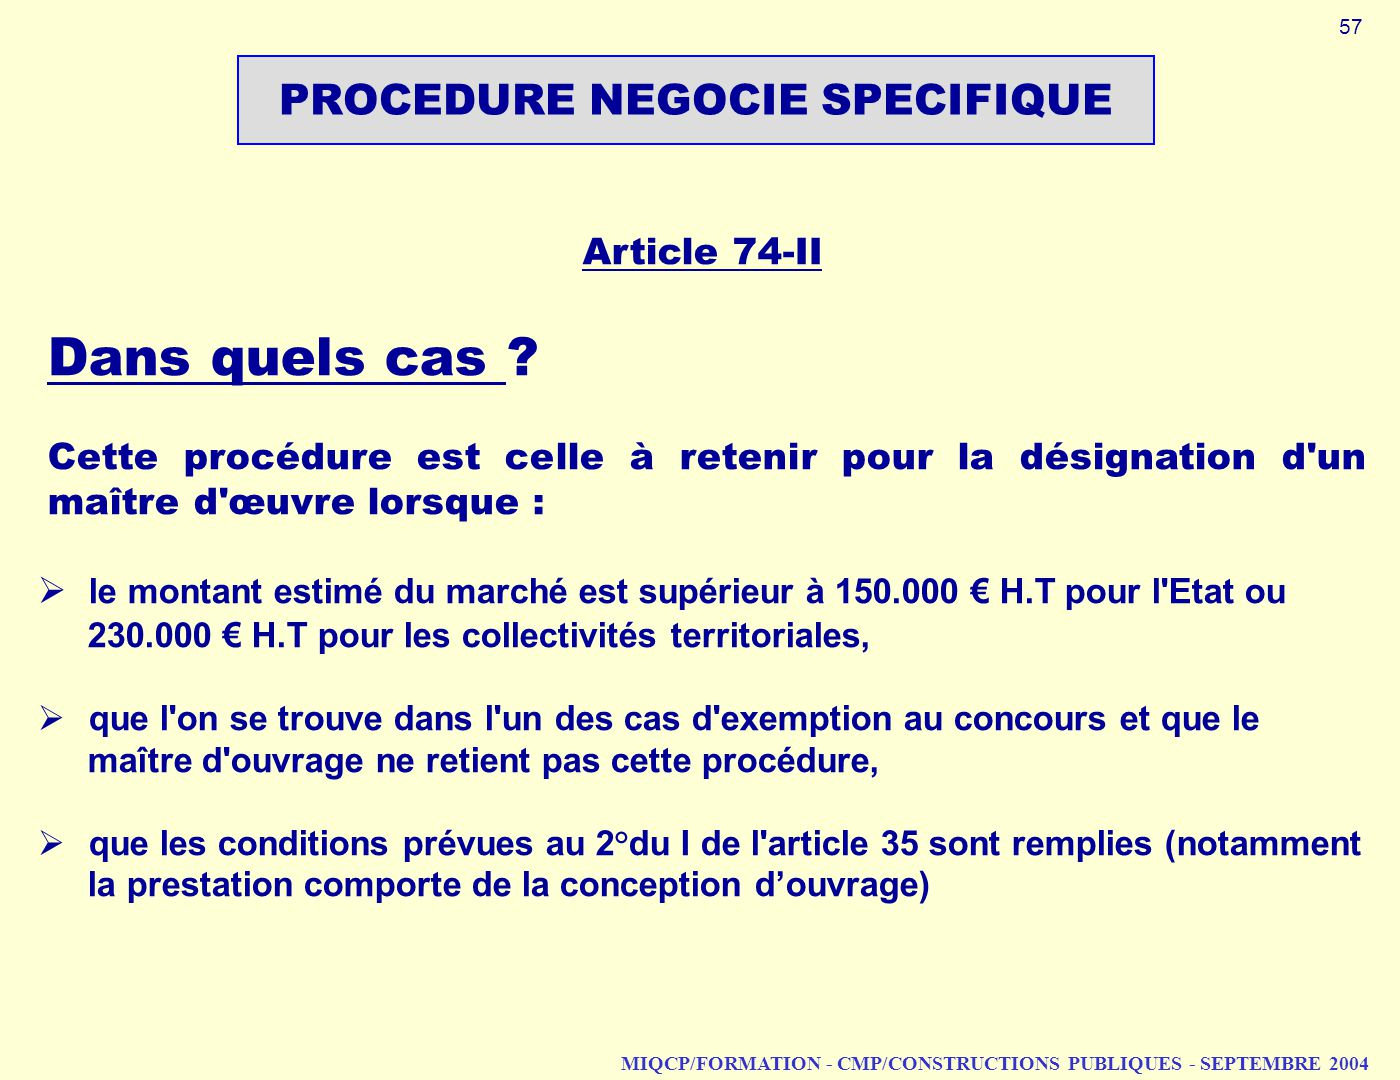 PROCEDURE NEGOCIE SPECIFIQUE